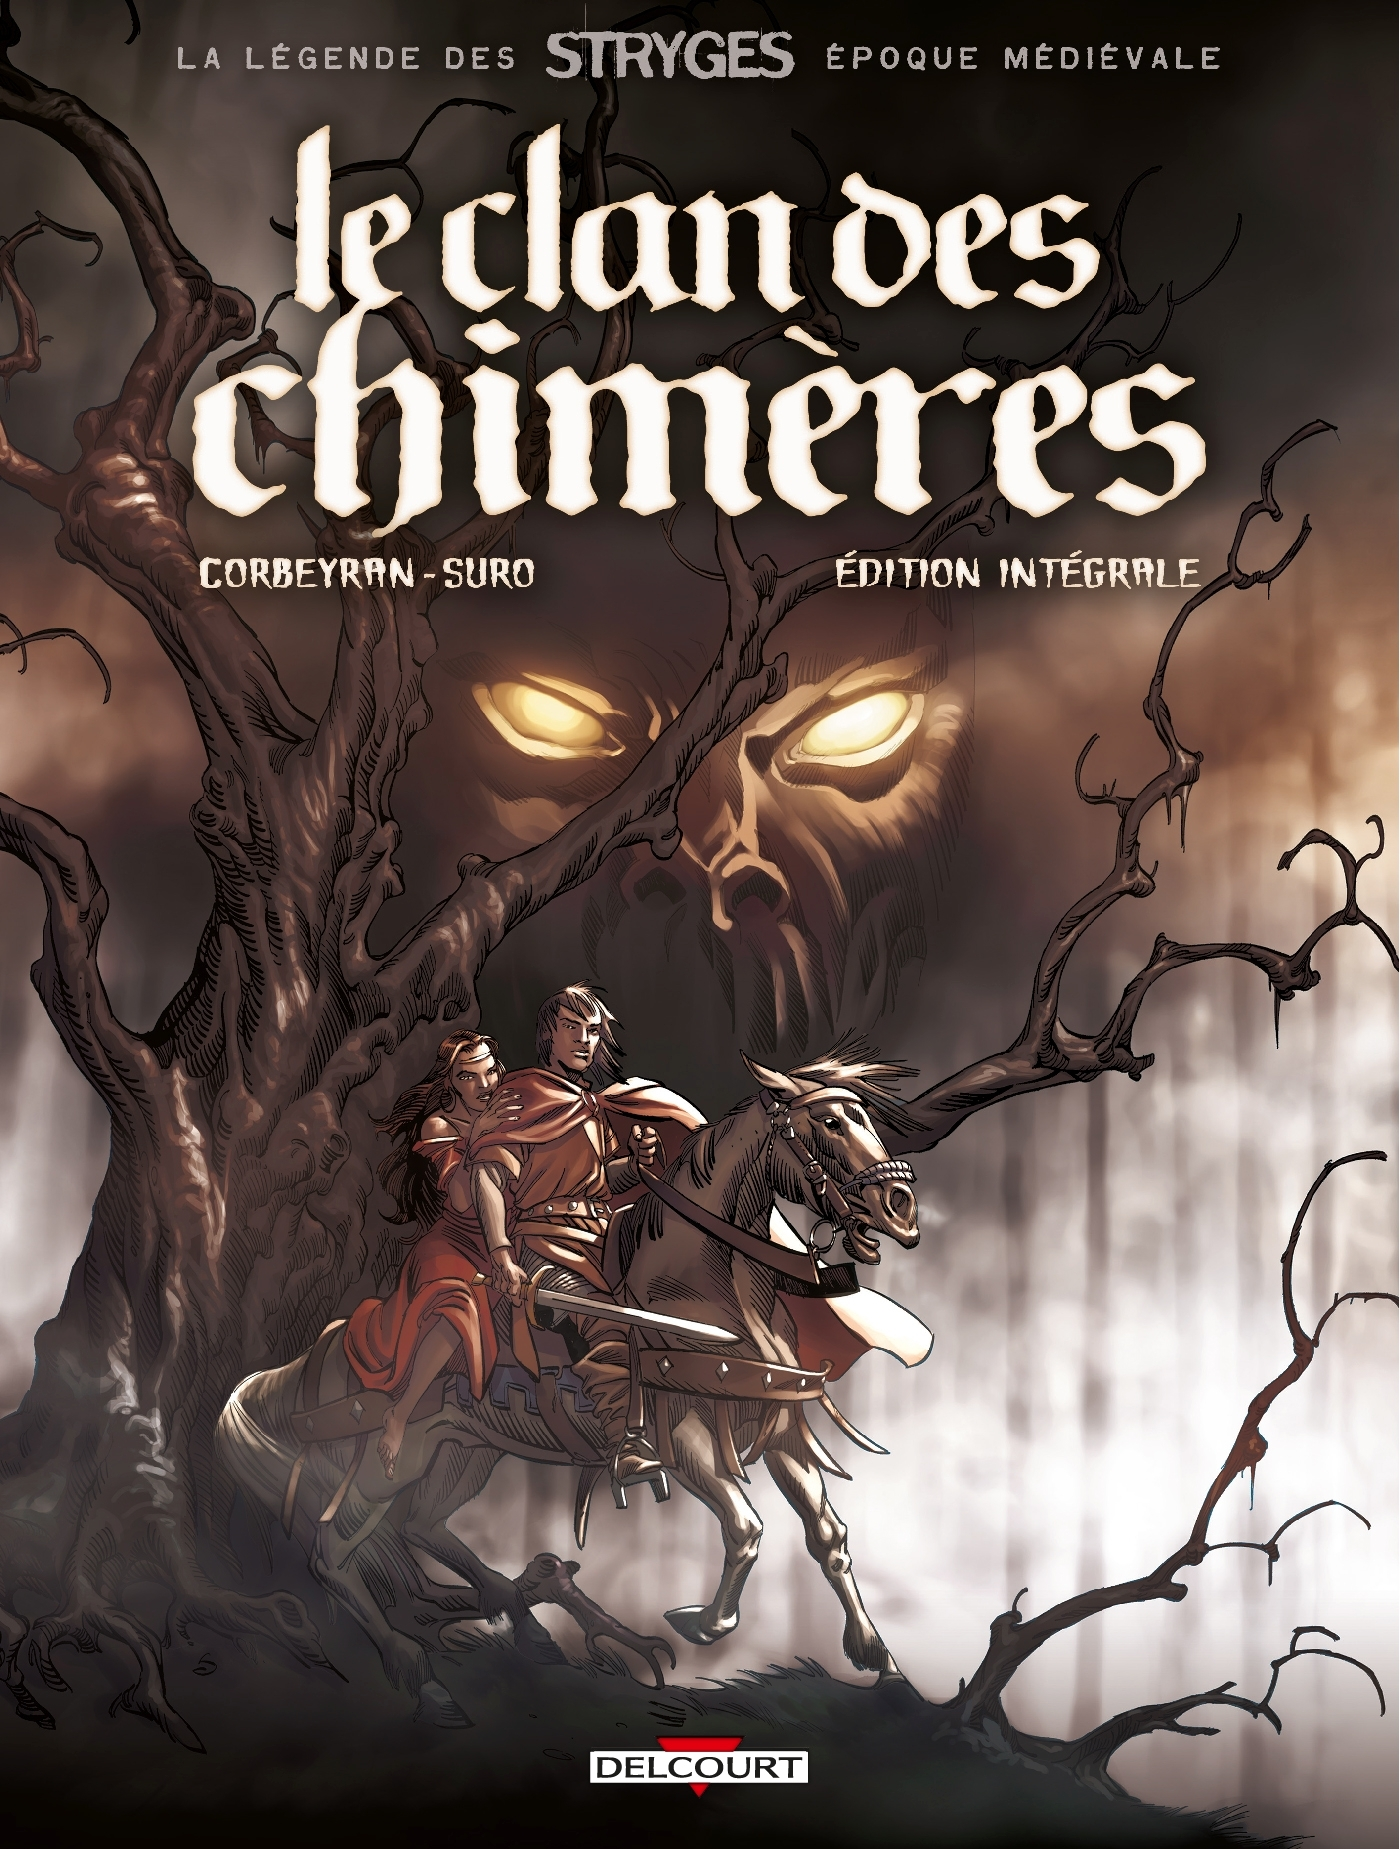 LEGENDE DES STRYGES. LE CLAN DES CHIMERES - INTEGRALE